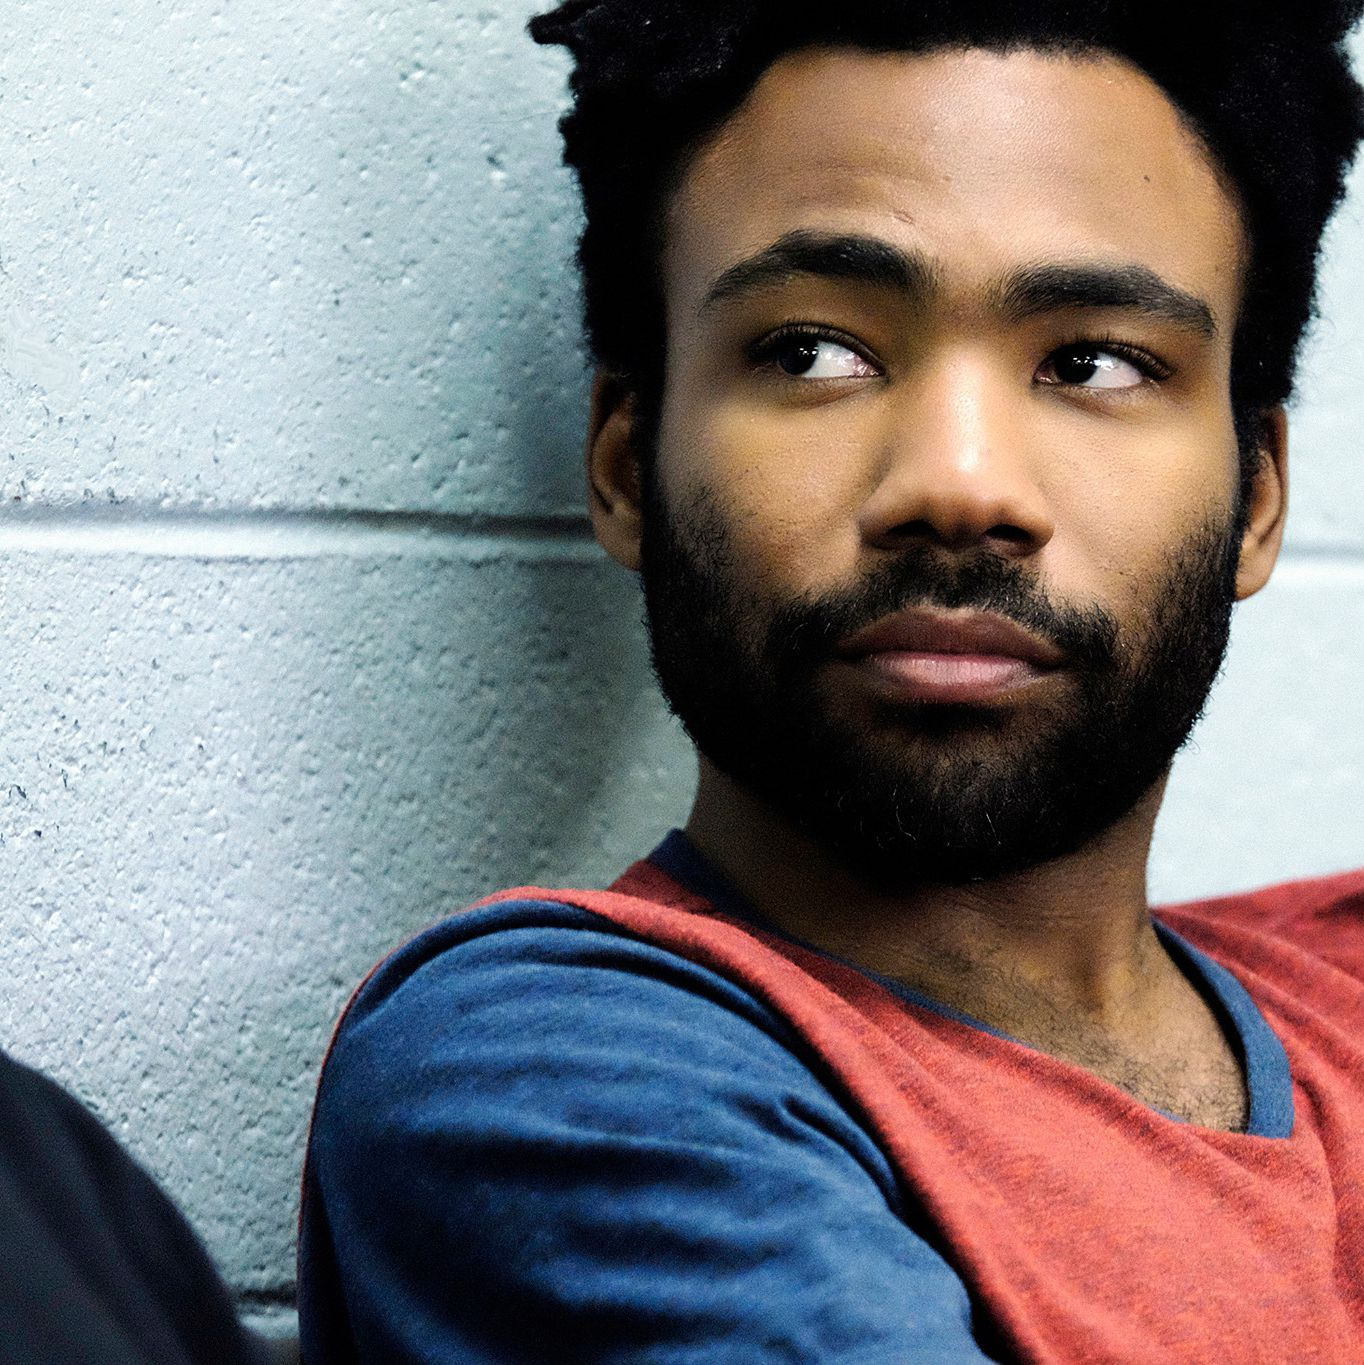 """<p>Created by and starring Donald Glover,&nbsp&#x3B;<em data-verified=""""redactor"""" data-redactor-tag=""""em"""">Atlanta</em><span class=""""redactor-invisible-space"""" data-verified=""""redactor"""" data-redactor-tag=""""span"""" data-redactor-class=""""redactor-invisible-space""""> tells the story of&nbsp&#x3B;Earn (Glover), an Ivy League dropout attempting to launch his cousin&nbsp&#x3B;(Brian Tyree Henry<span class=""""redactor-invisible-space"""" data-verified=""""redactor"""" data-redactor-tag=""""span"""" data-redactor-class=""""redactor-invisible-space"""">)</span>&nbsp&#x3B;into rap stardom.</span></p><p><span class=""""redactor-invisible-space"""" data-verified=""""redactor"""" data-redactor-tag=""""span"""" data-redactor-class=""""redactor-invisible-space""""><em data-verified=""""redactor"""" data-redactor-tag=""""em""""><a href=""""https://youtu.be/N-KdOvyZlQo"""" target=""""_blank"""">Atlanta</a>&nbsp&#x3B;</em><span class=""""redactor-invisible-space"""" data-verified=""""redactor"""" data-redactor-tag=""""span"""" data-redactor-class=""""redactor-invisible-space"""">airs Tuesdays at 10 PM EST on FX.</span><br></span></p>"""